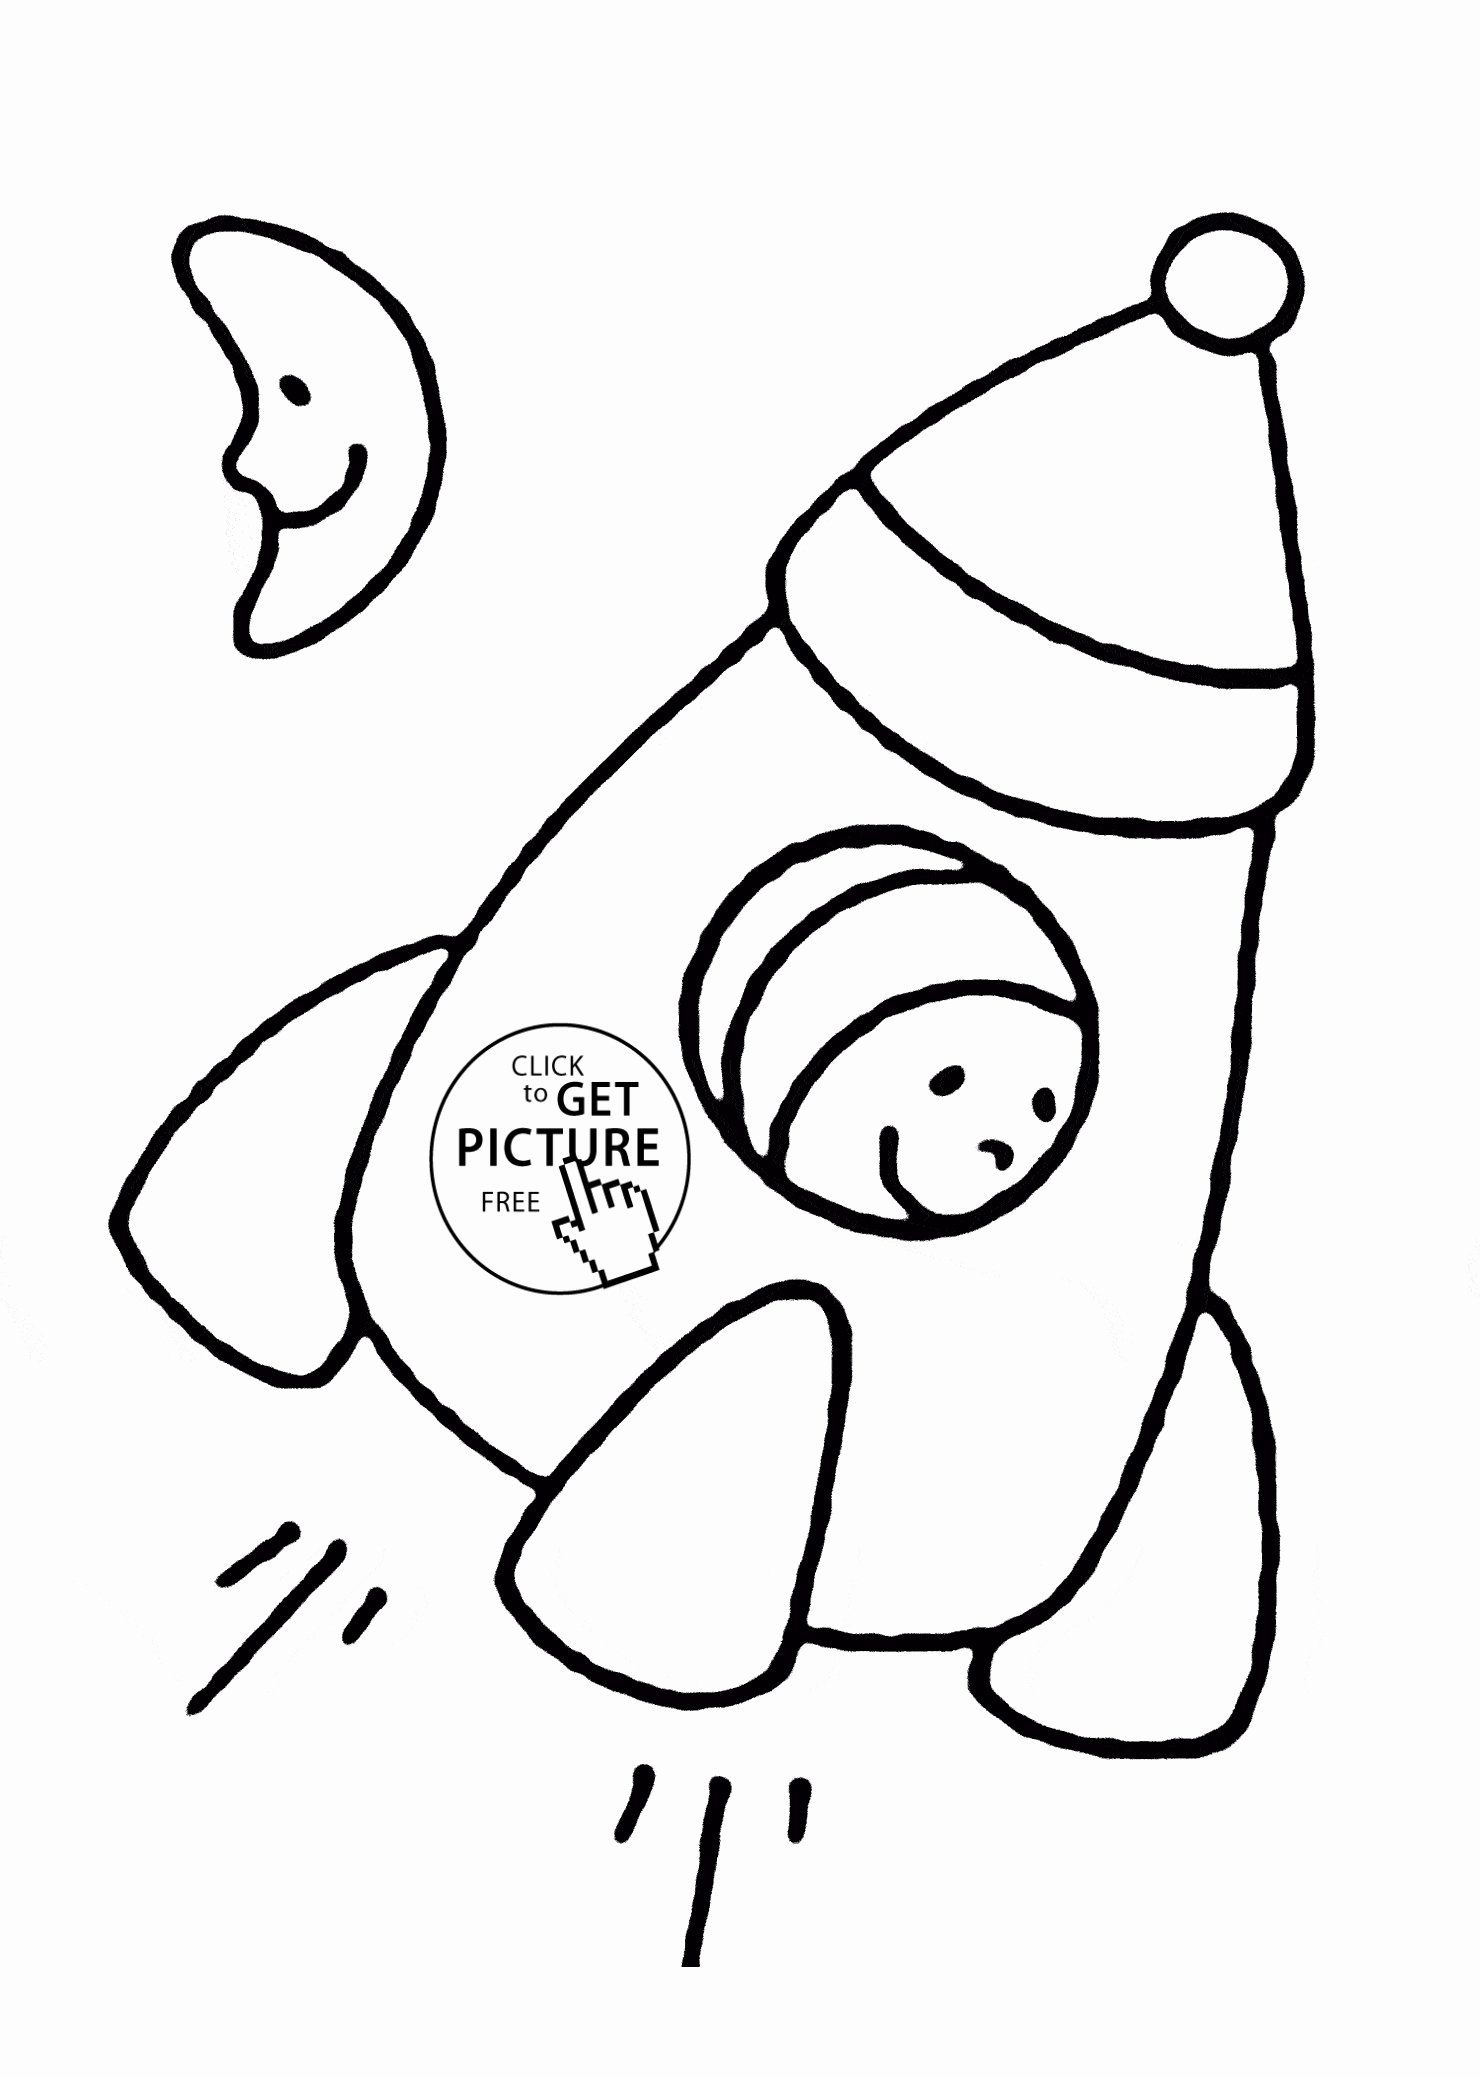 Simple Shapes Coloring Pages Fresh Coloring Book Simple Coloring Pages For Kids Kanta Me